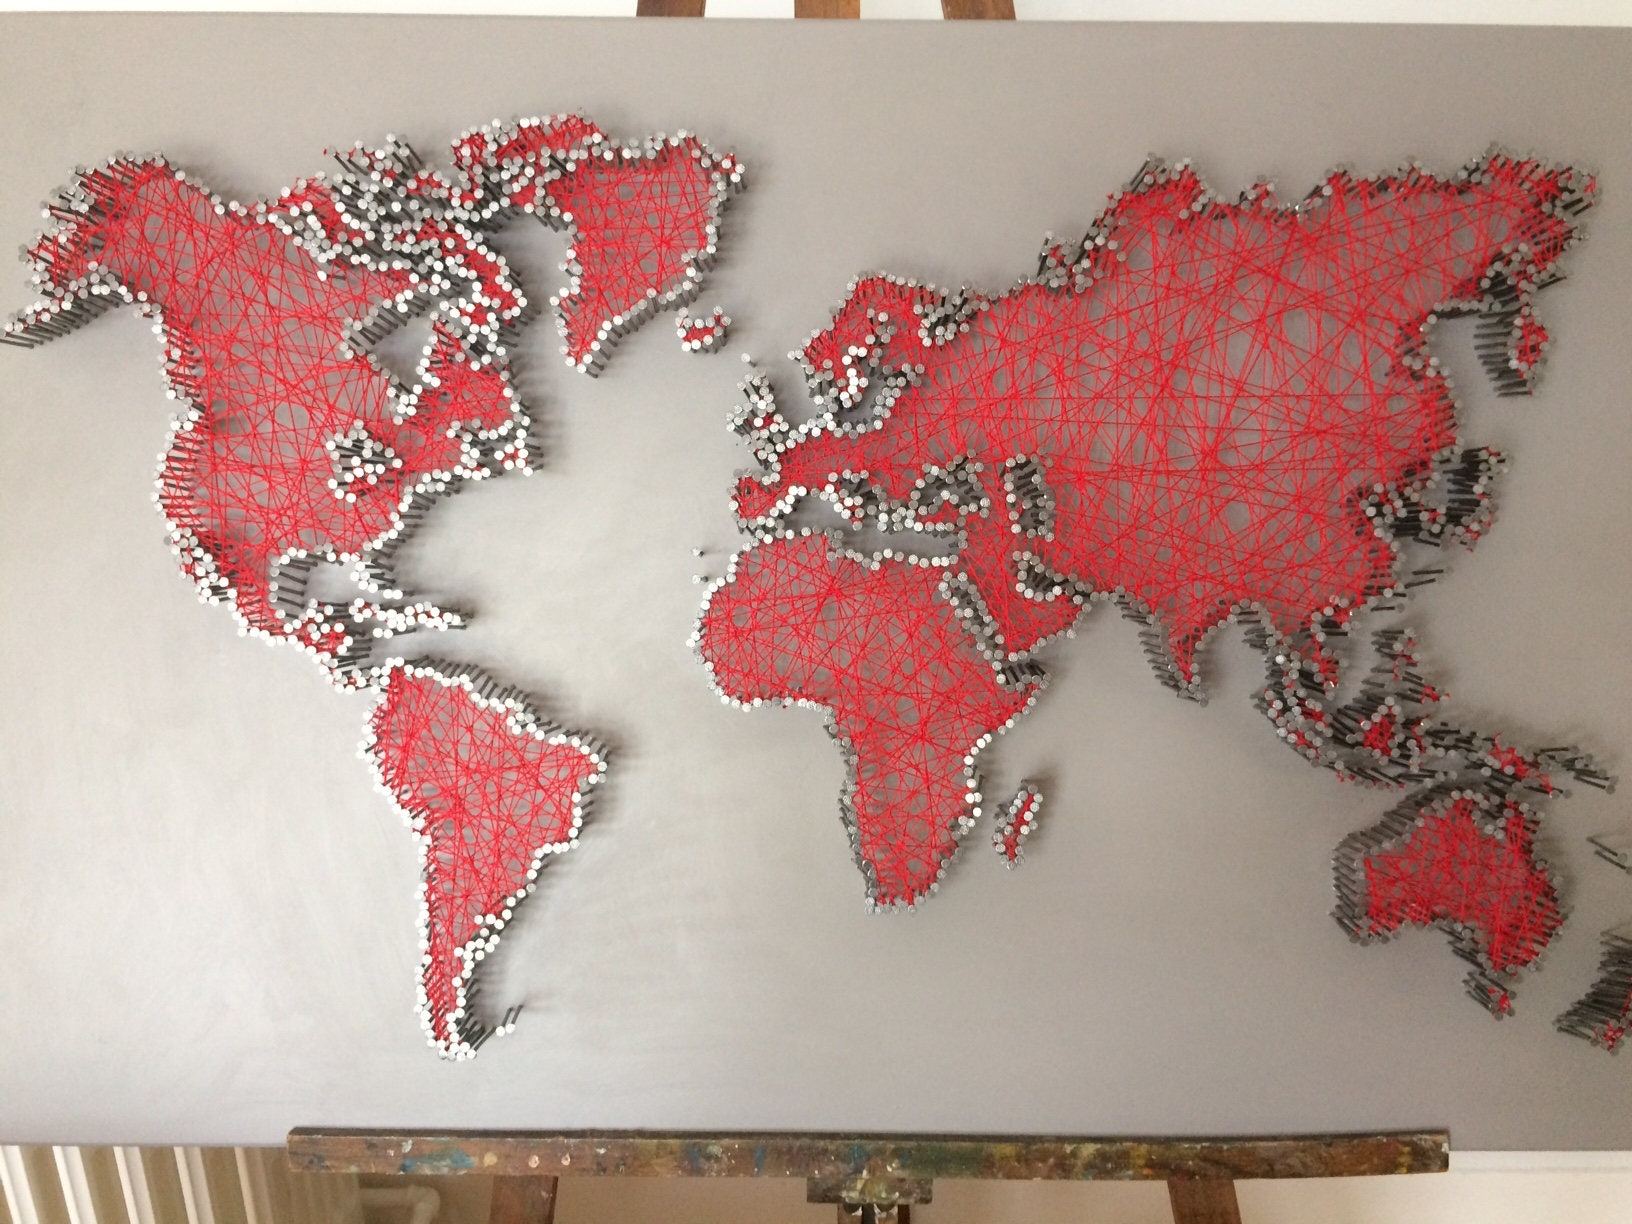 World map string art pictures to pin on pinterest thepinsta mappemonde en string art gumiabroncs Gallery